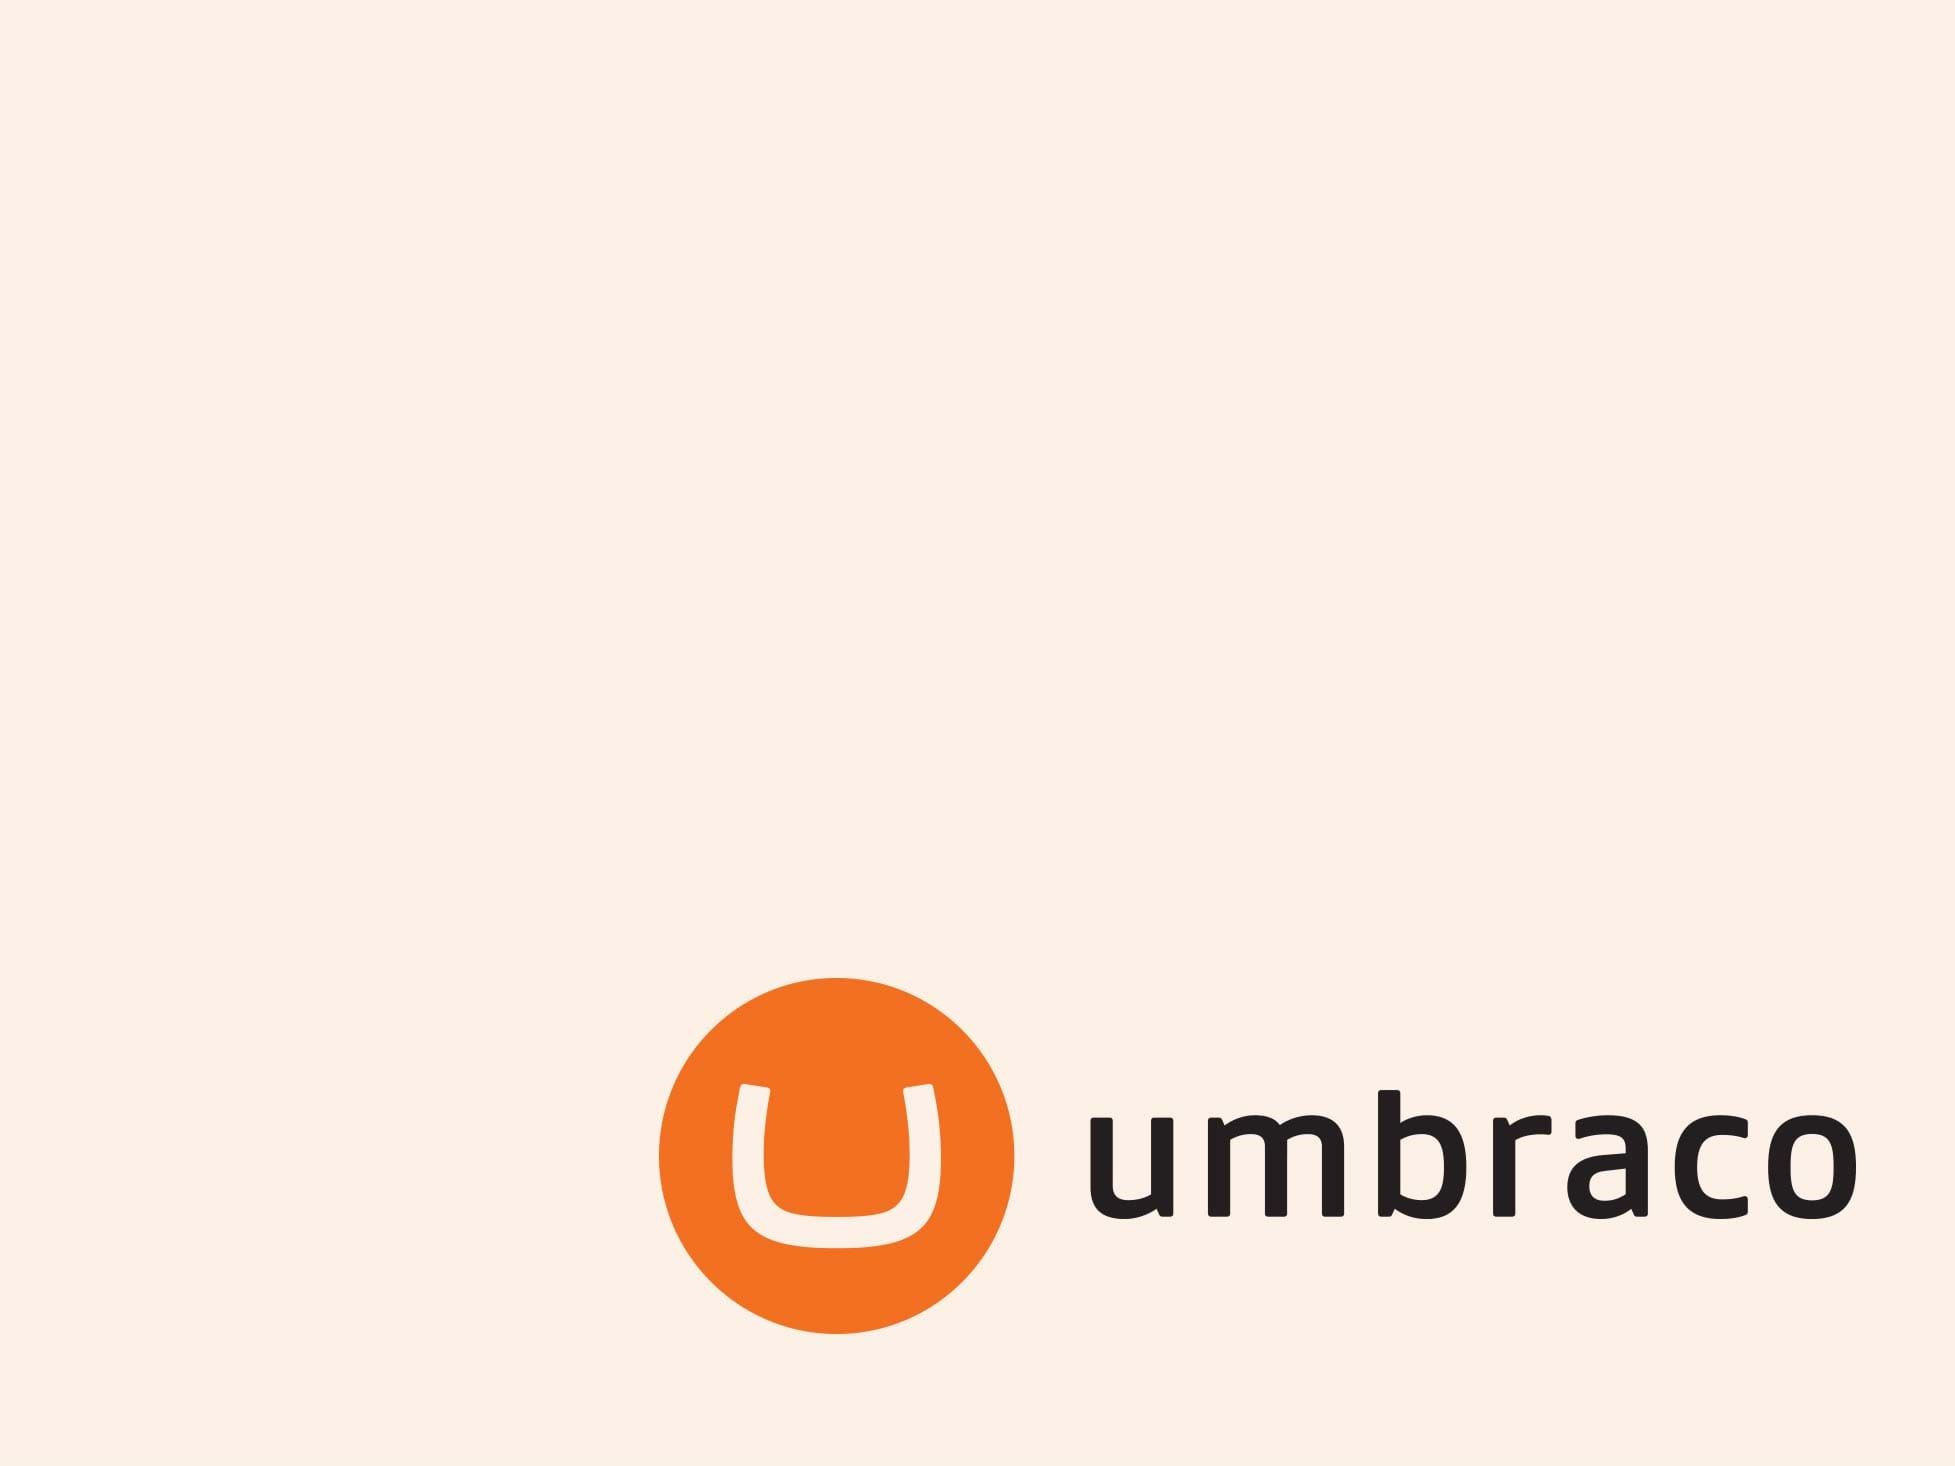 migrating your website to umbraco